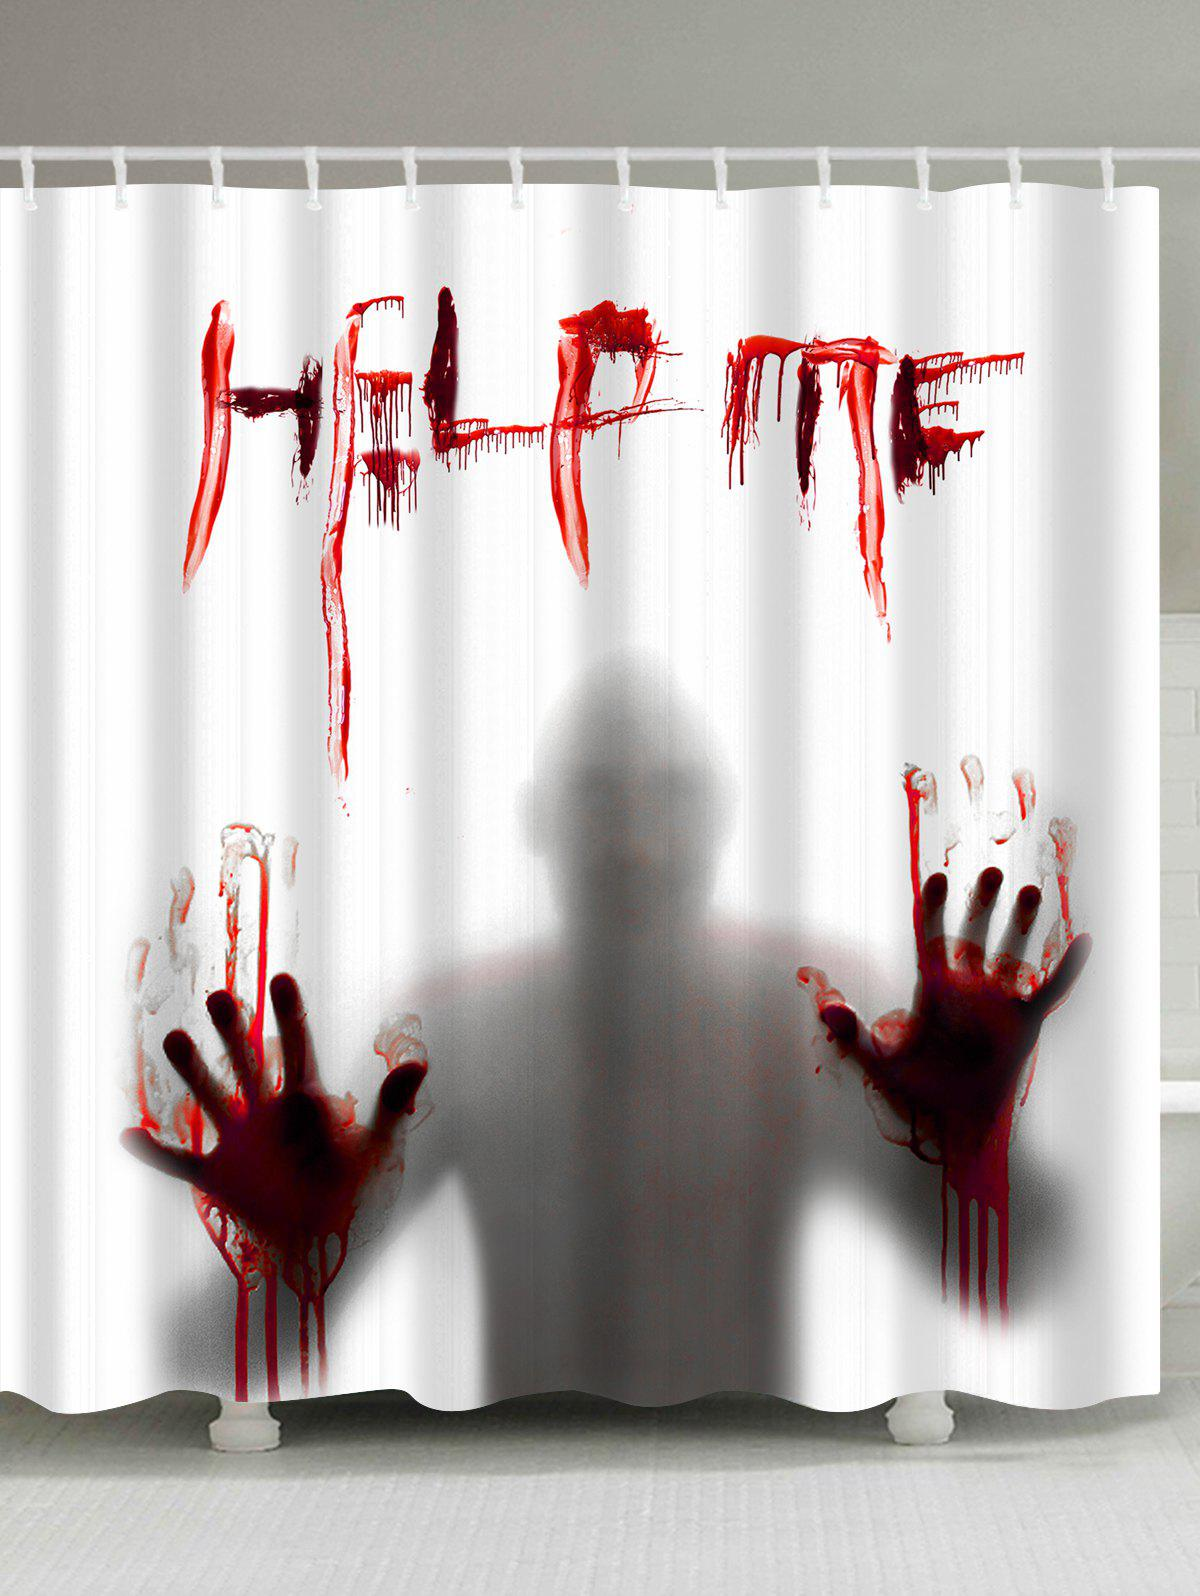 Gothic Help Me Shadow Shower Curtain For HalloweenHOME<br><br>Size: W71 INCH * L79 INCH; Color: WHITE; Products Type: Shower Curtains; Materials: Polyester; Pattern: Figure; Style: Gothic; Number of Hook Holes: W59 inch*L71 inch: 10; W71 inch*L71 inch: 12; W71 inch*L79 inch: 12; Package Contents: 1 x Shower Curtain 1 x Hooks (Set);